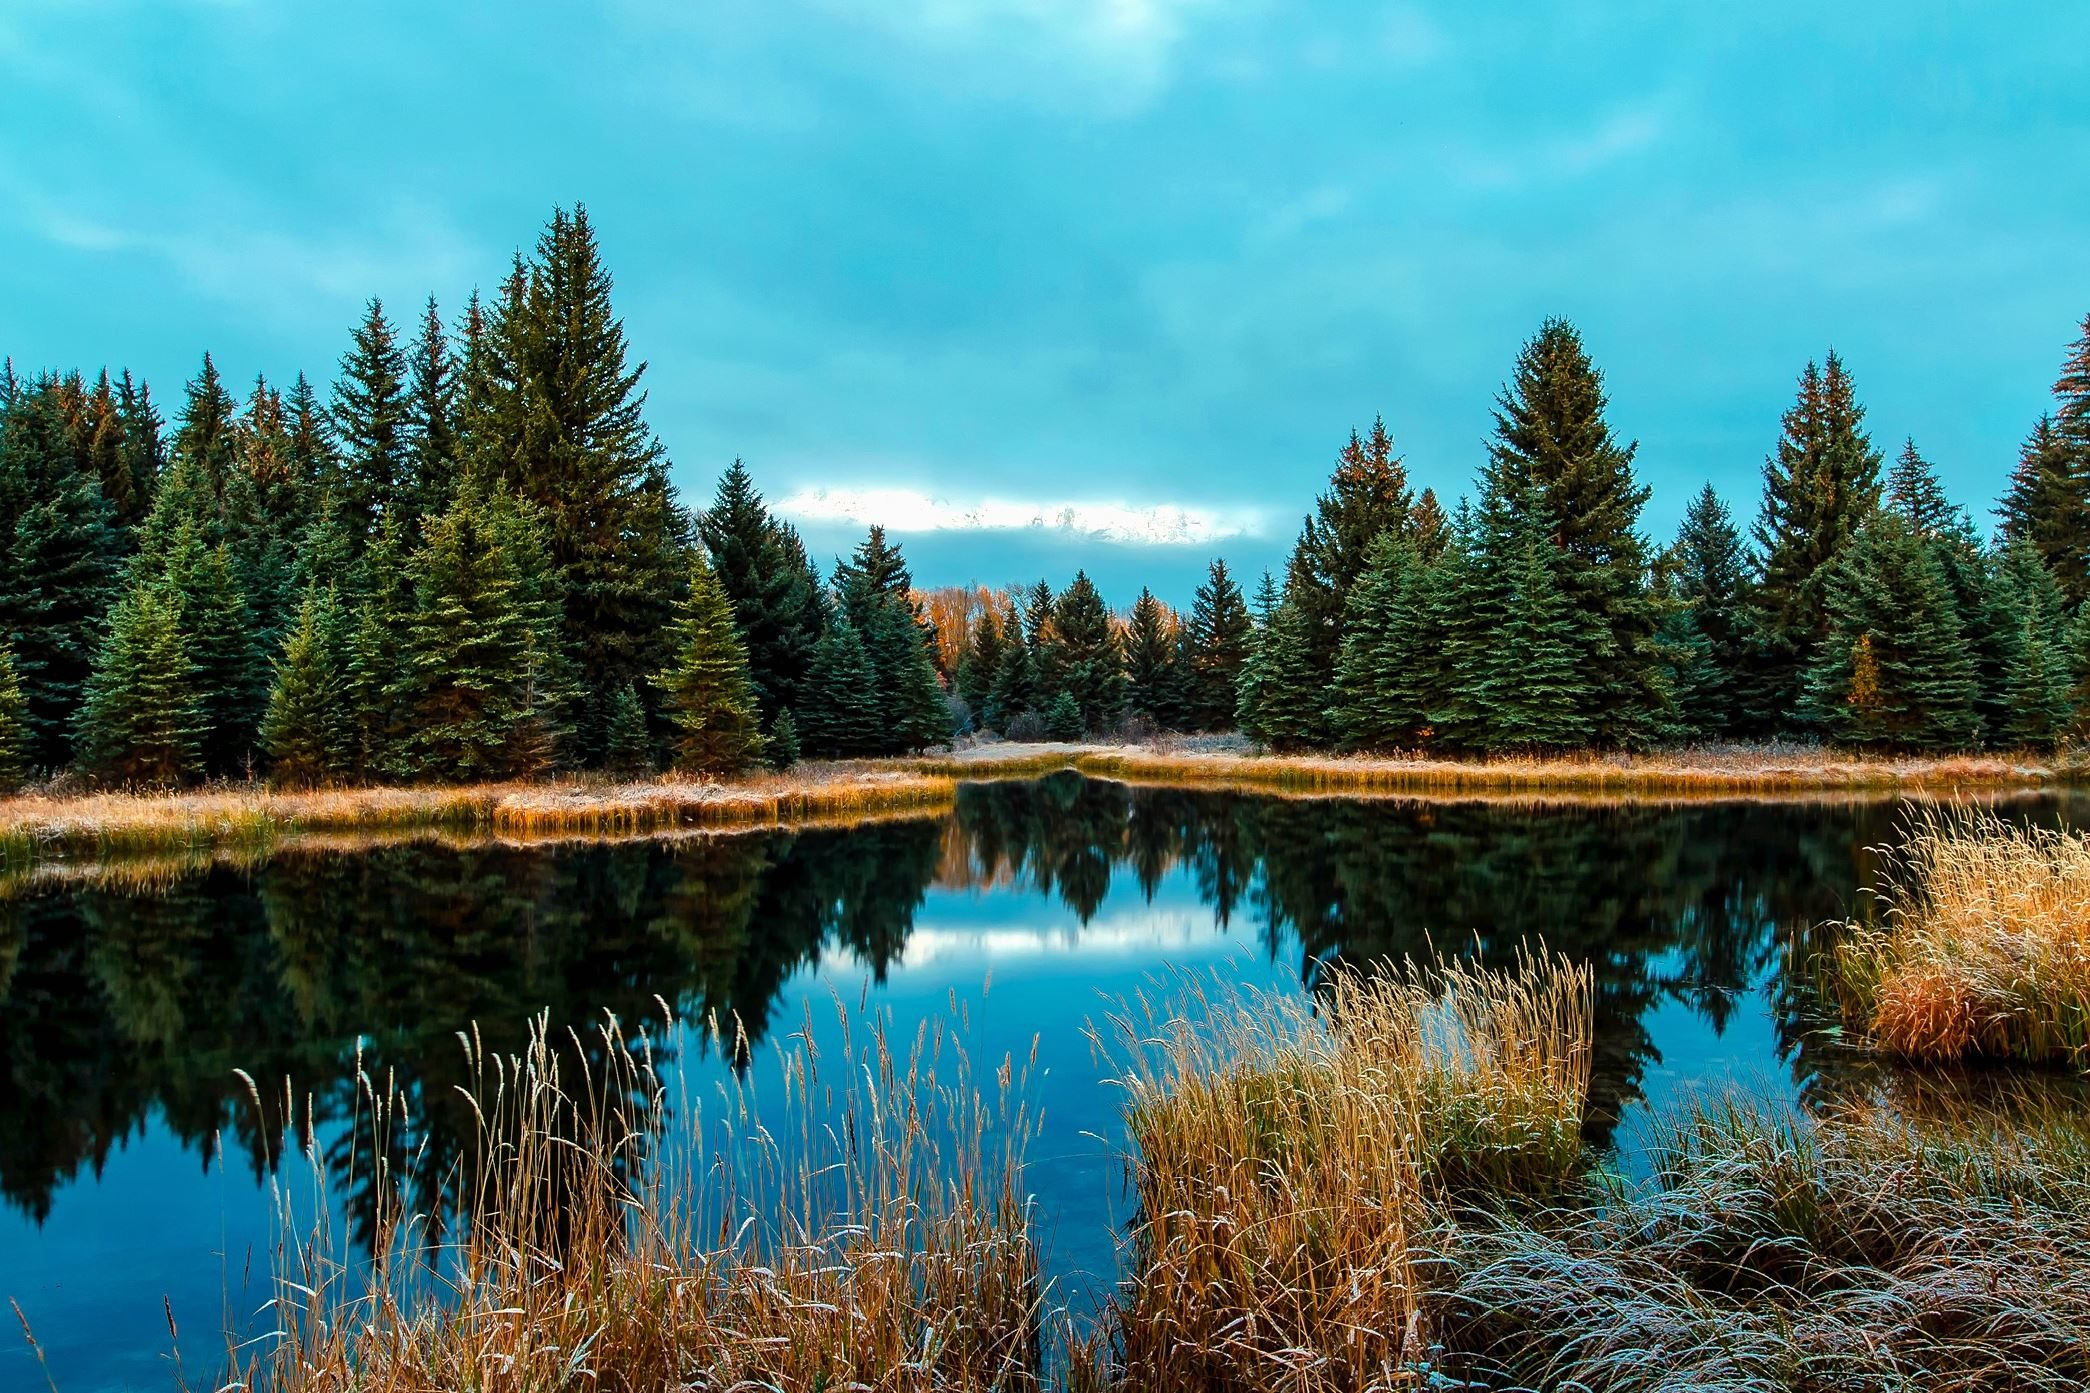 Free Hd Wallpaper Fall Free Picture Water Wilderness Woods Blue Sky Conifer